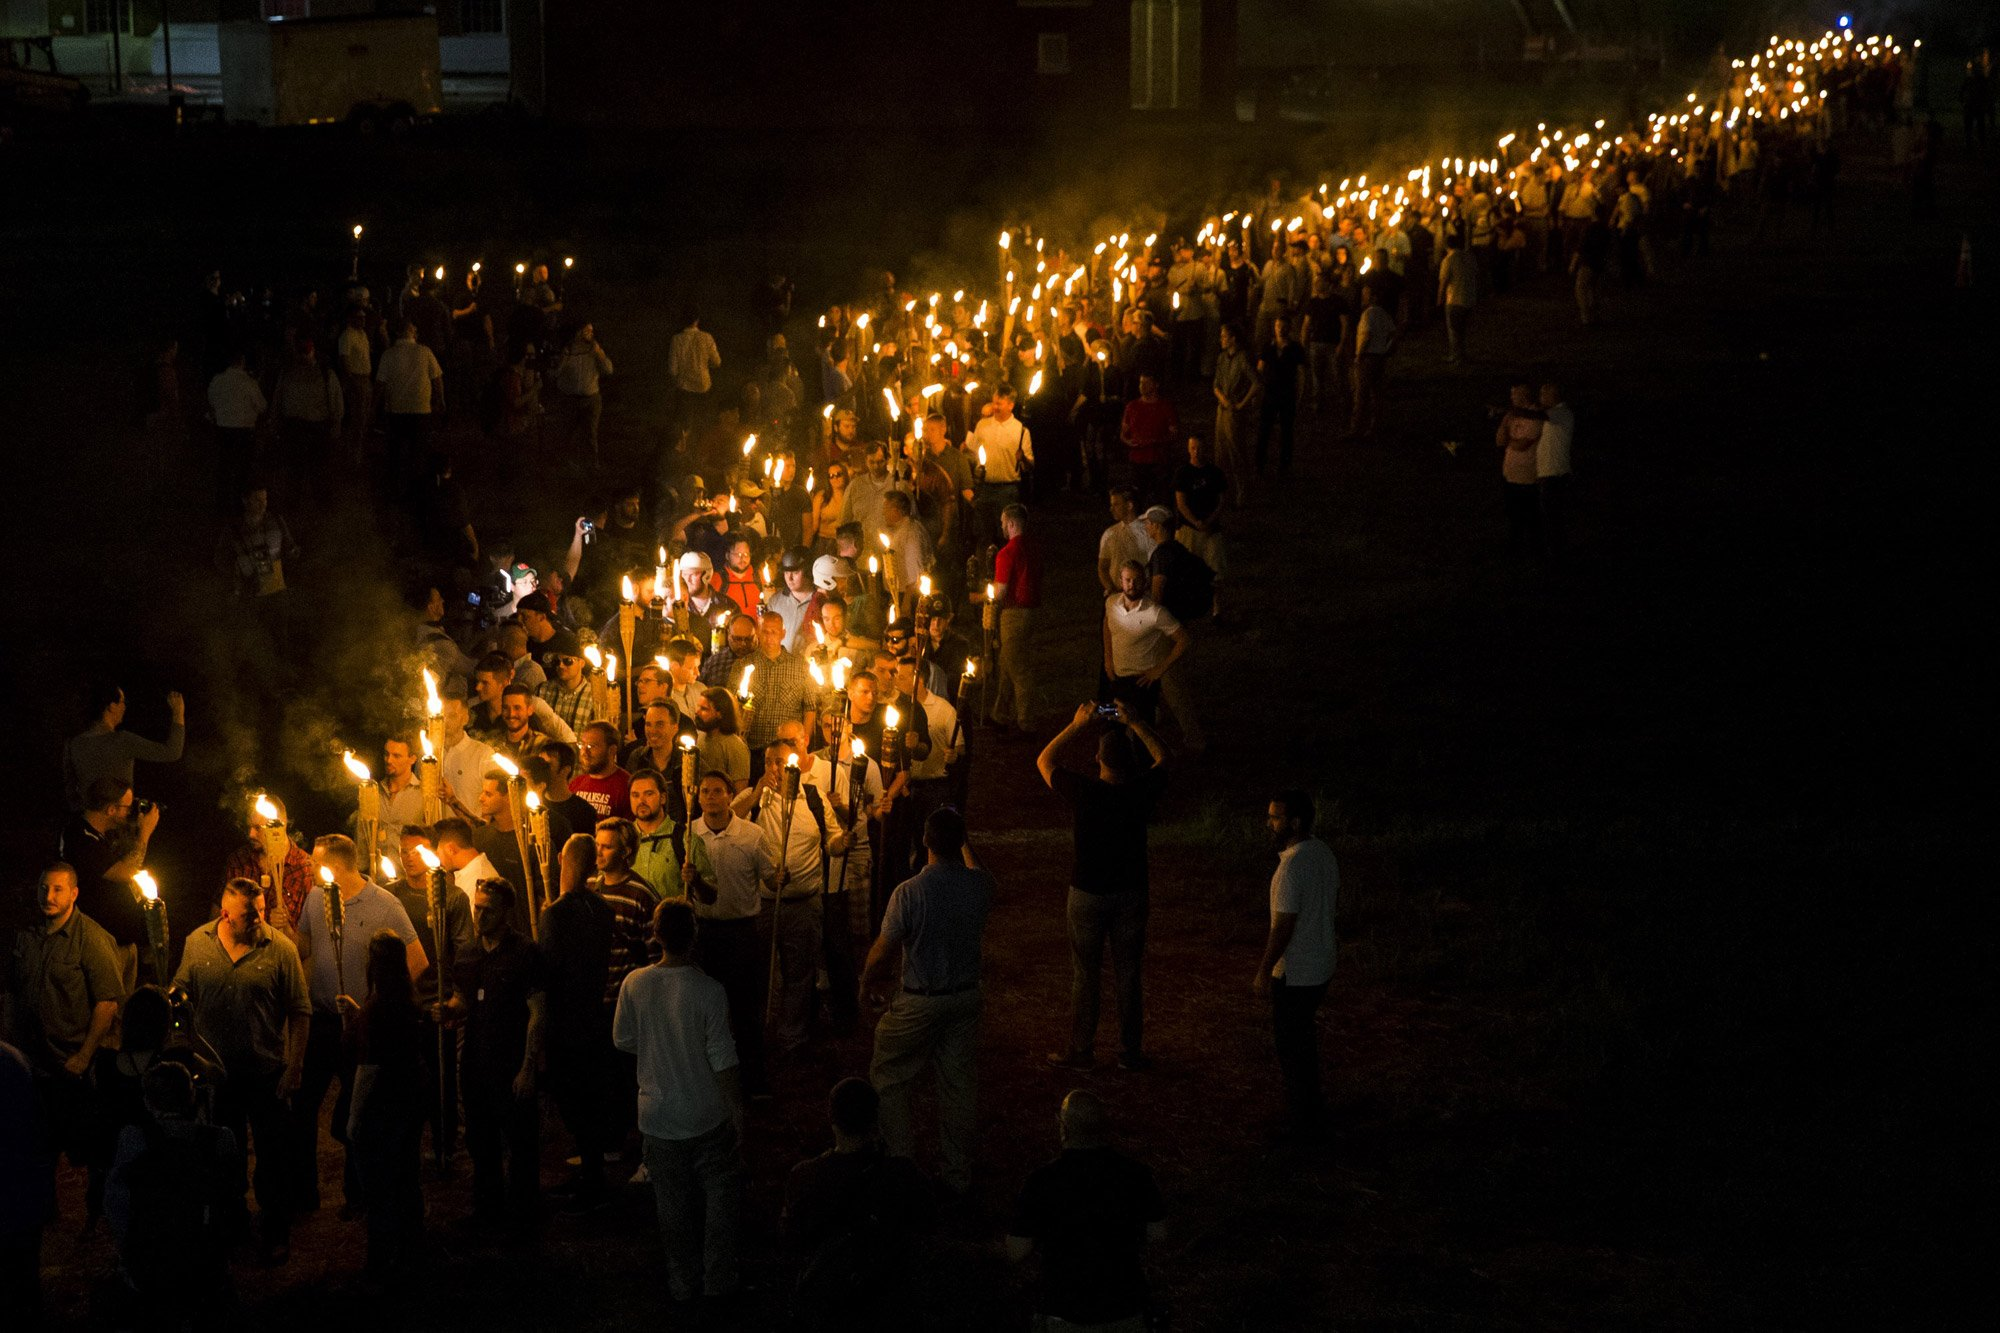 White nationalists march through the University of Virginia Campus with torches in Charlottesville, USA. August 2017